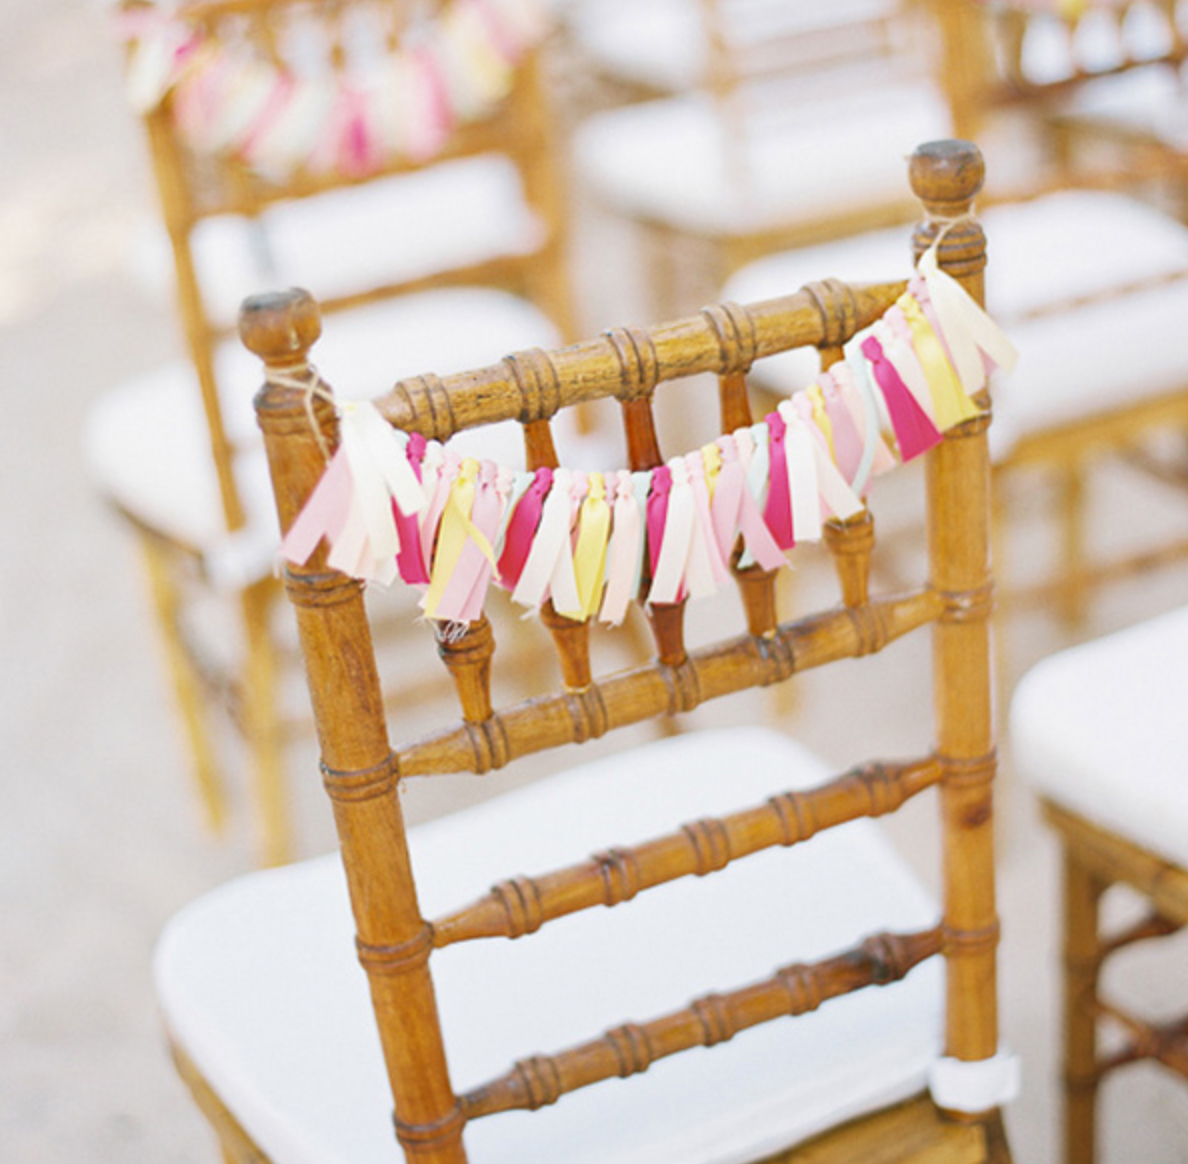 colourful tassels on seats at wedding ceremony